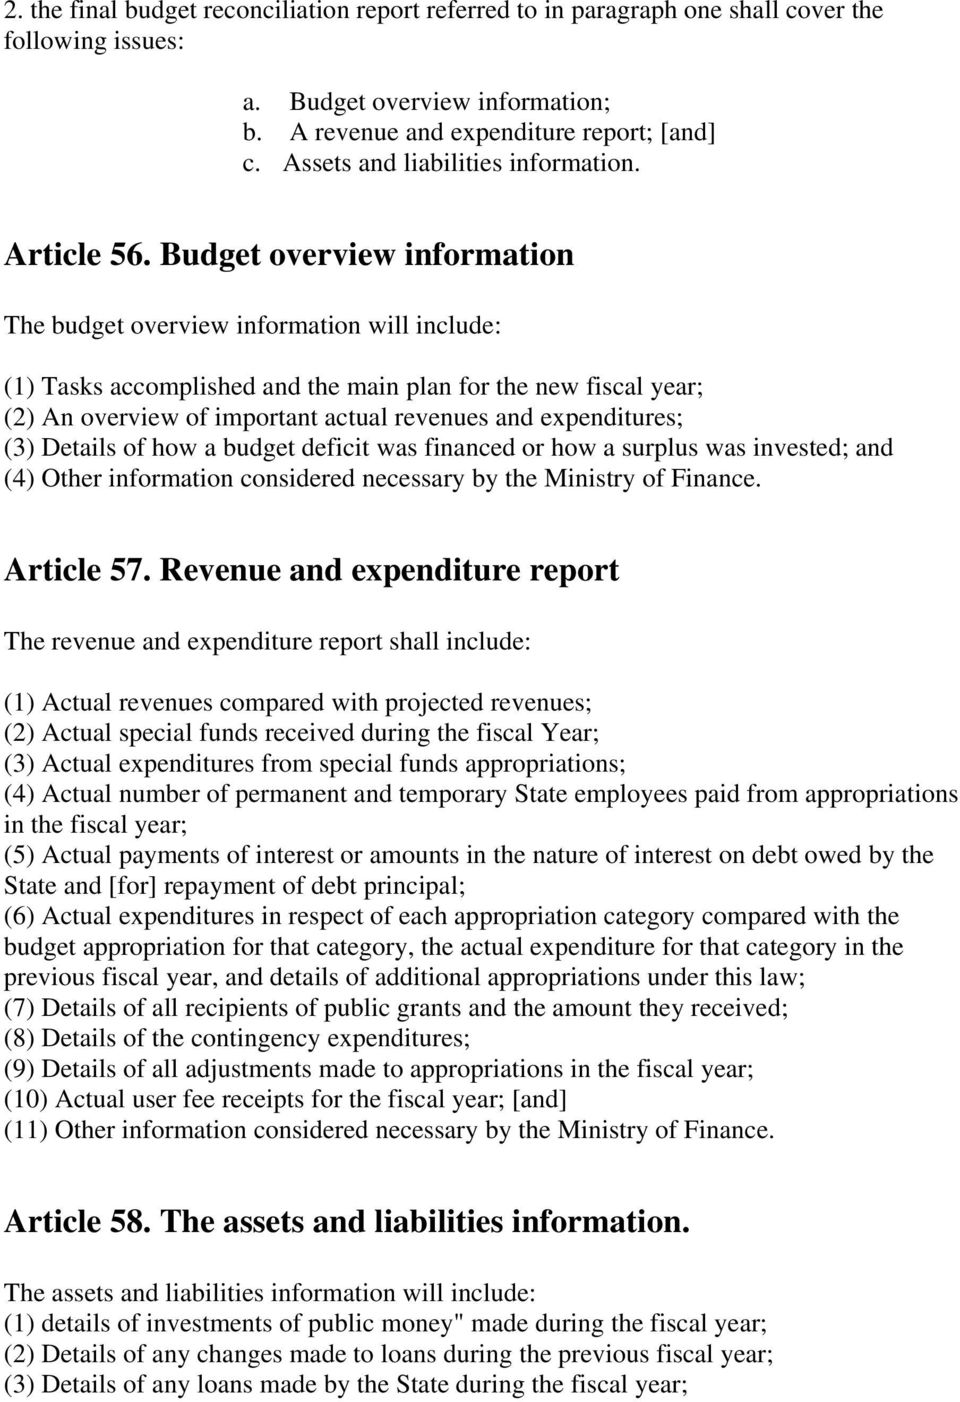 Budget overview information The budget overview information will include: (1) Tasks accomplished and the main plan for the new fiscal year; (2) An overview of important actual revenues and